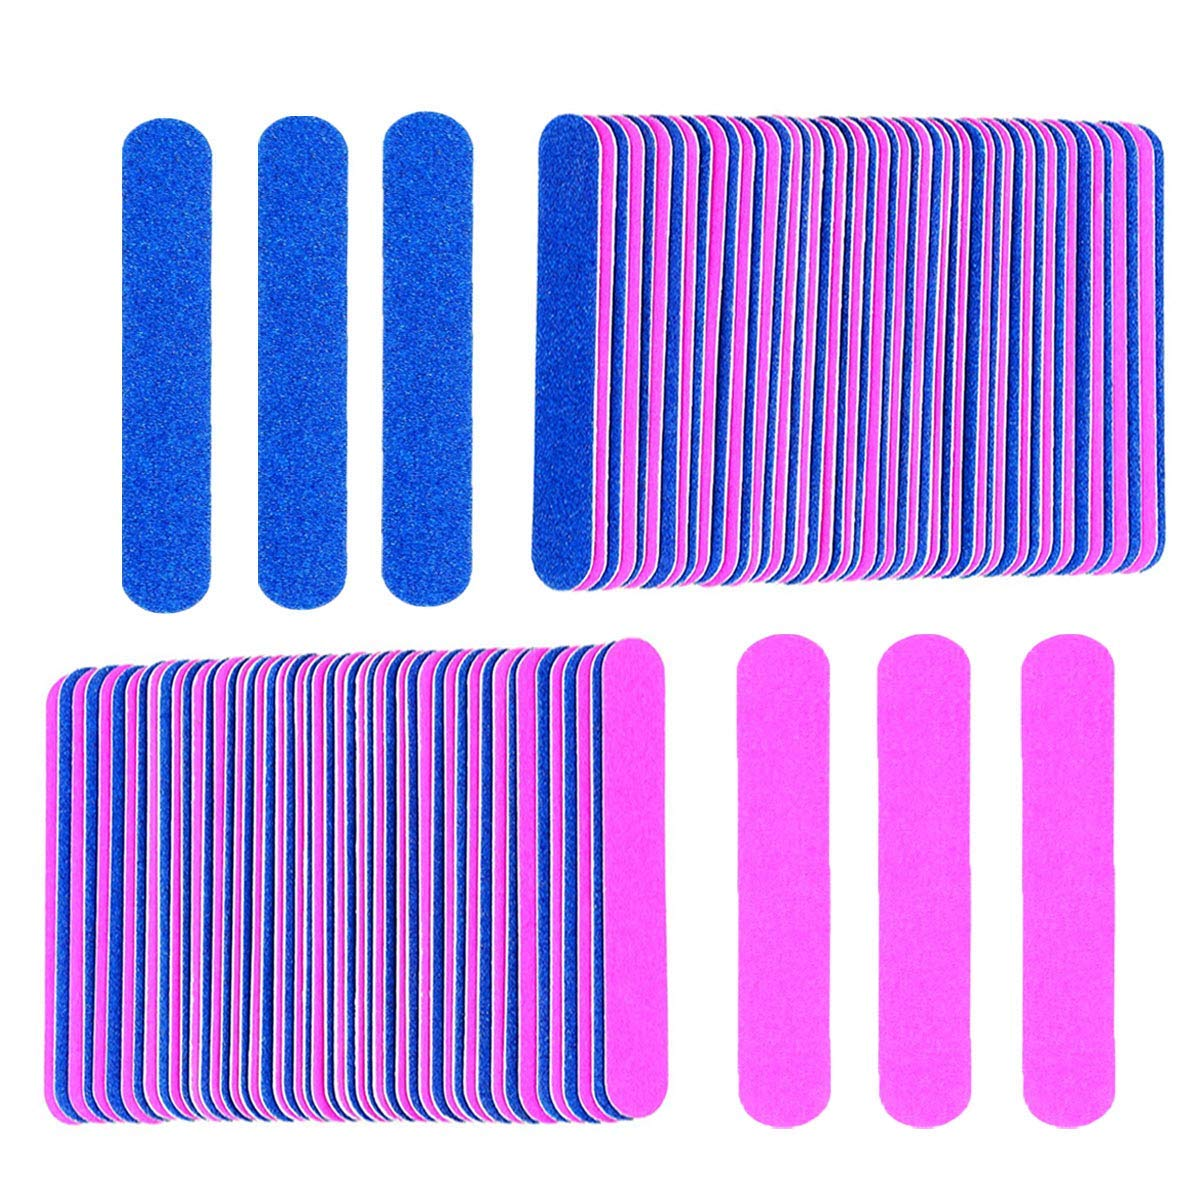 Professional Mini Nail Files Bulk, 50 Pcs Disposable Double Sided Emery Boards Travel Size for Men, Women, Kids (50 Pcs, Blue and Pink)